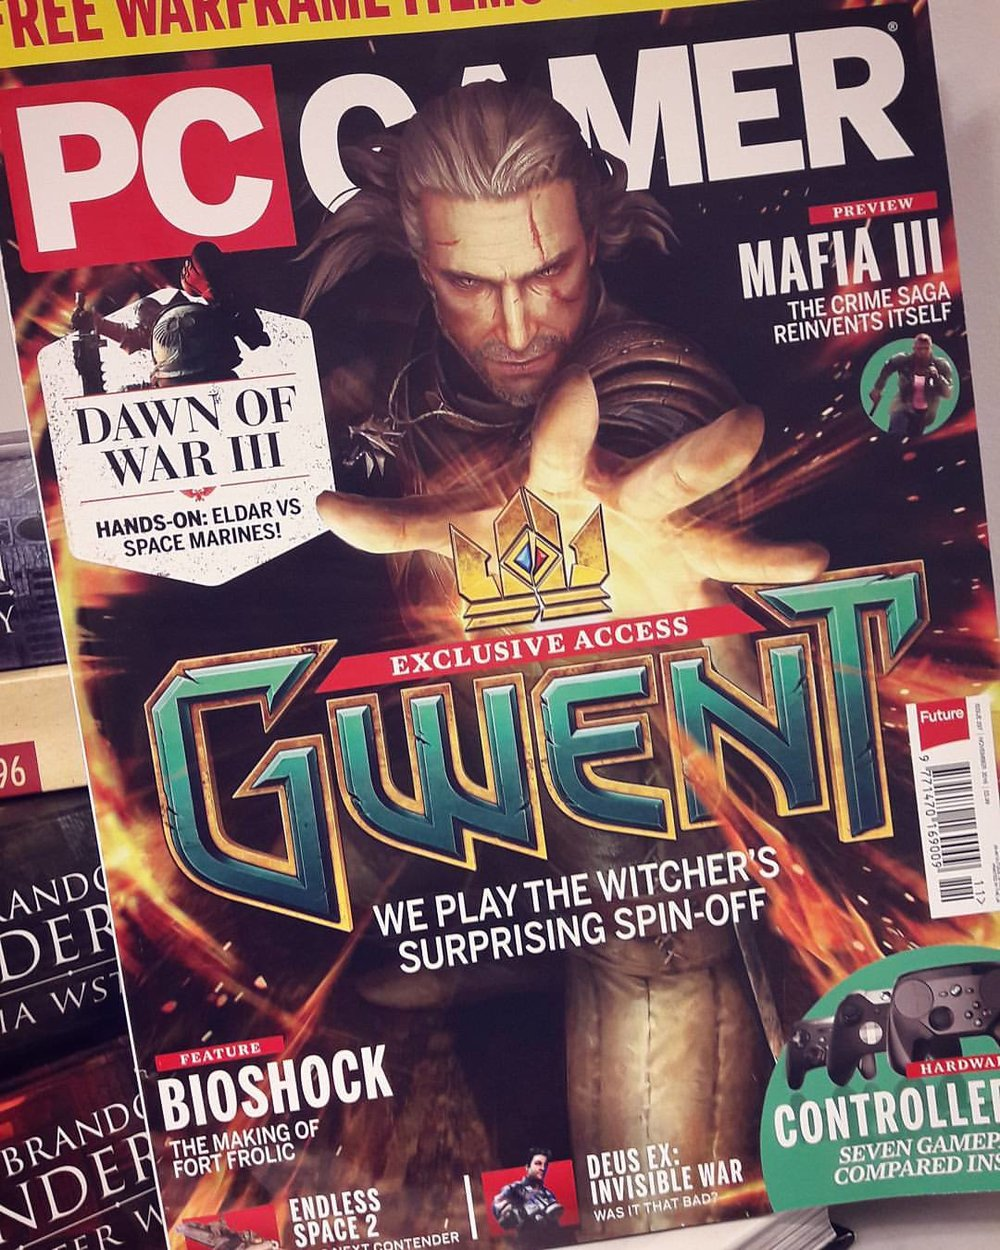 CD Projekt Red praised by PC Gamer magazine — The Gaming